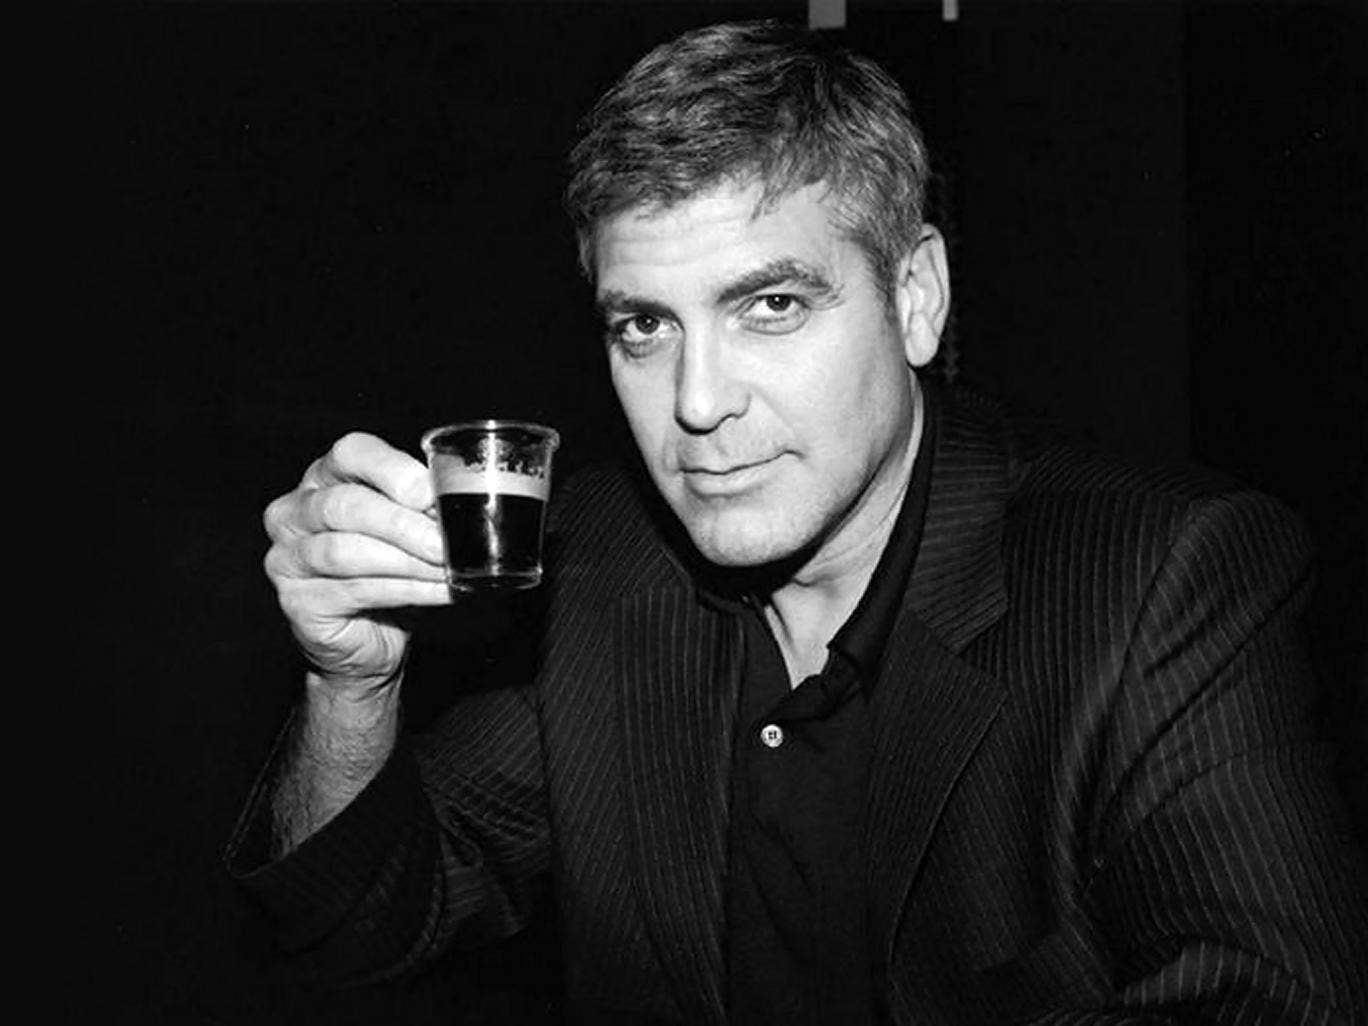 Pod cast: George Clooney has been appearing in adverts for Nespresso coffeemakers